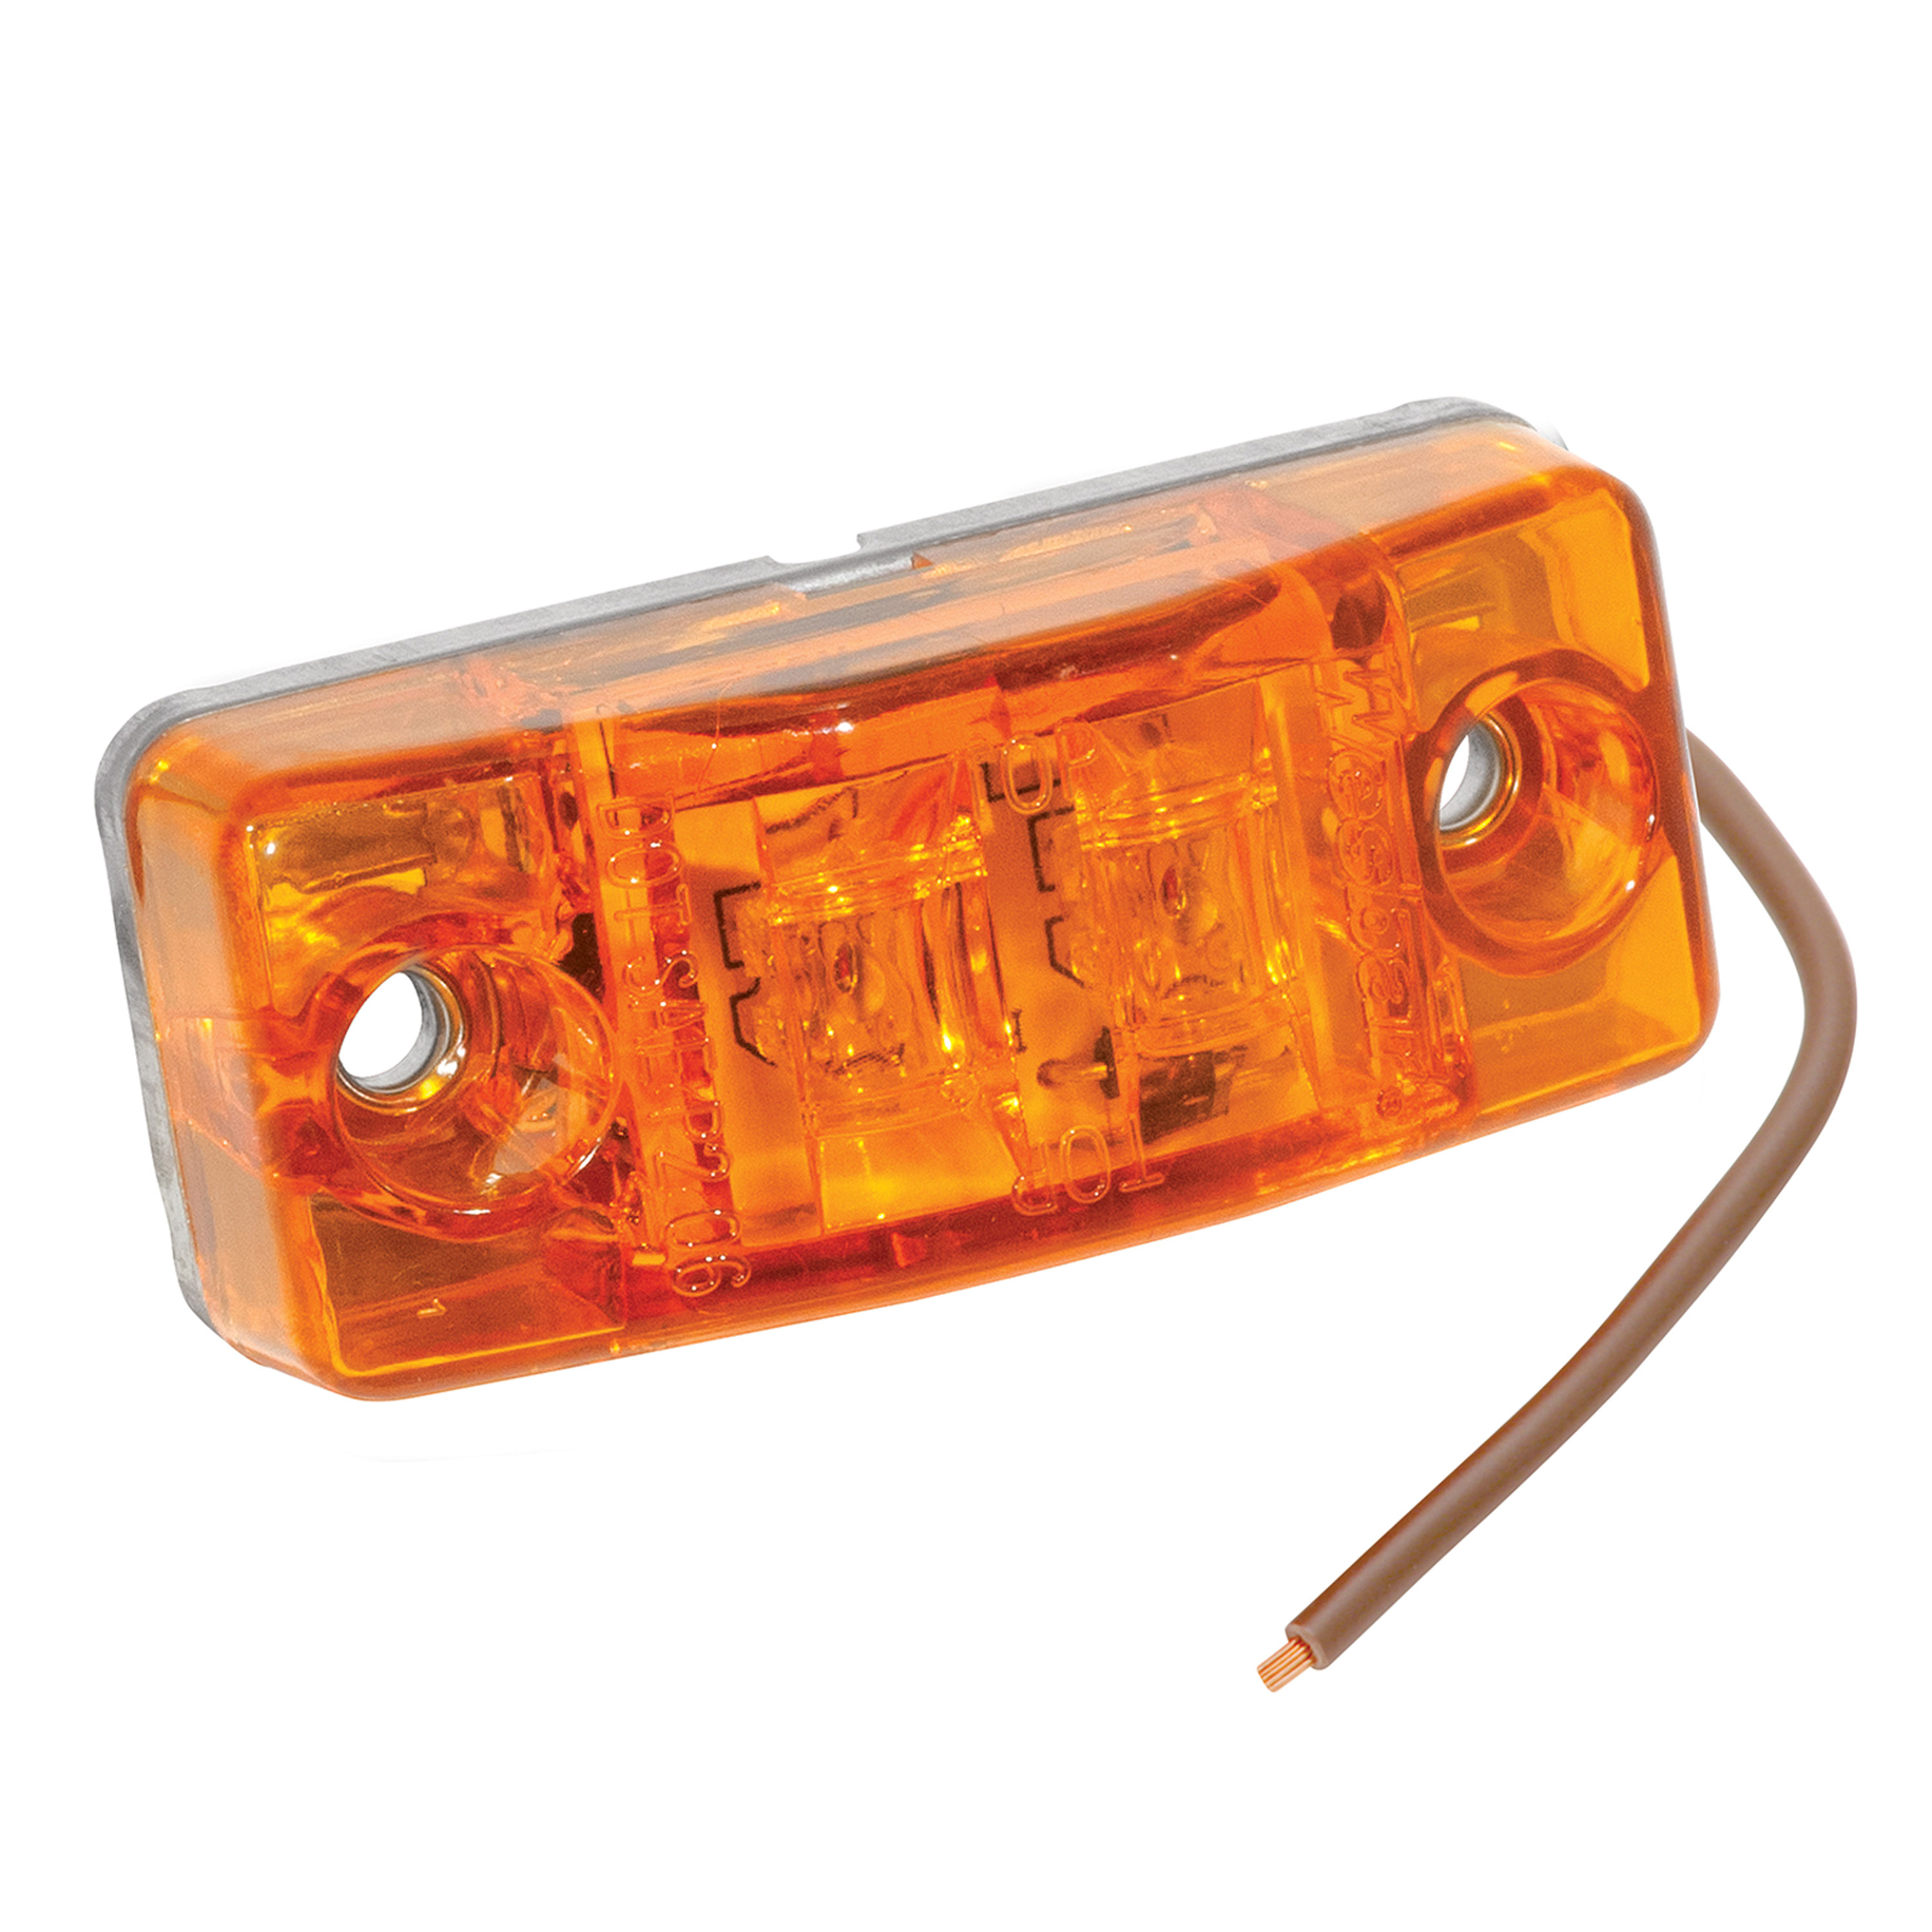 Bargman 42-99-401 LED Clearance Light #99 - Red